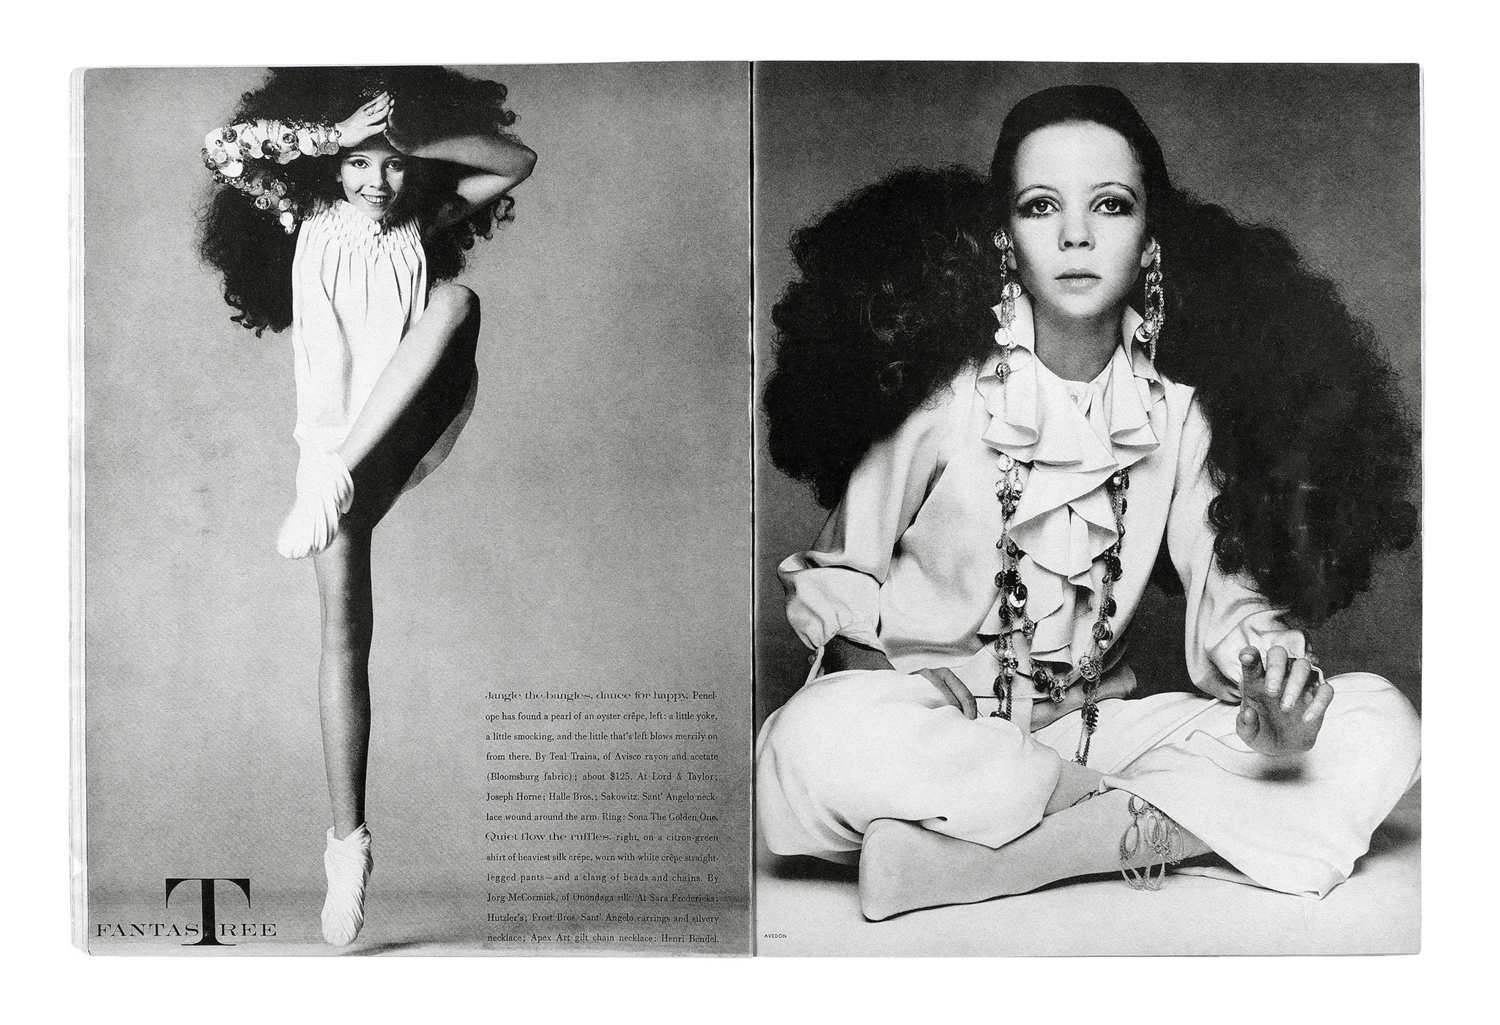 Vogue, January 1968 — The Richard Avedon Foundation